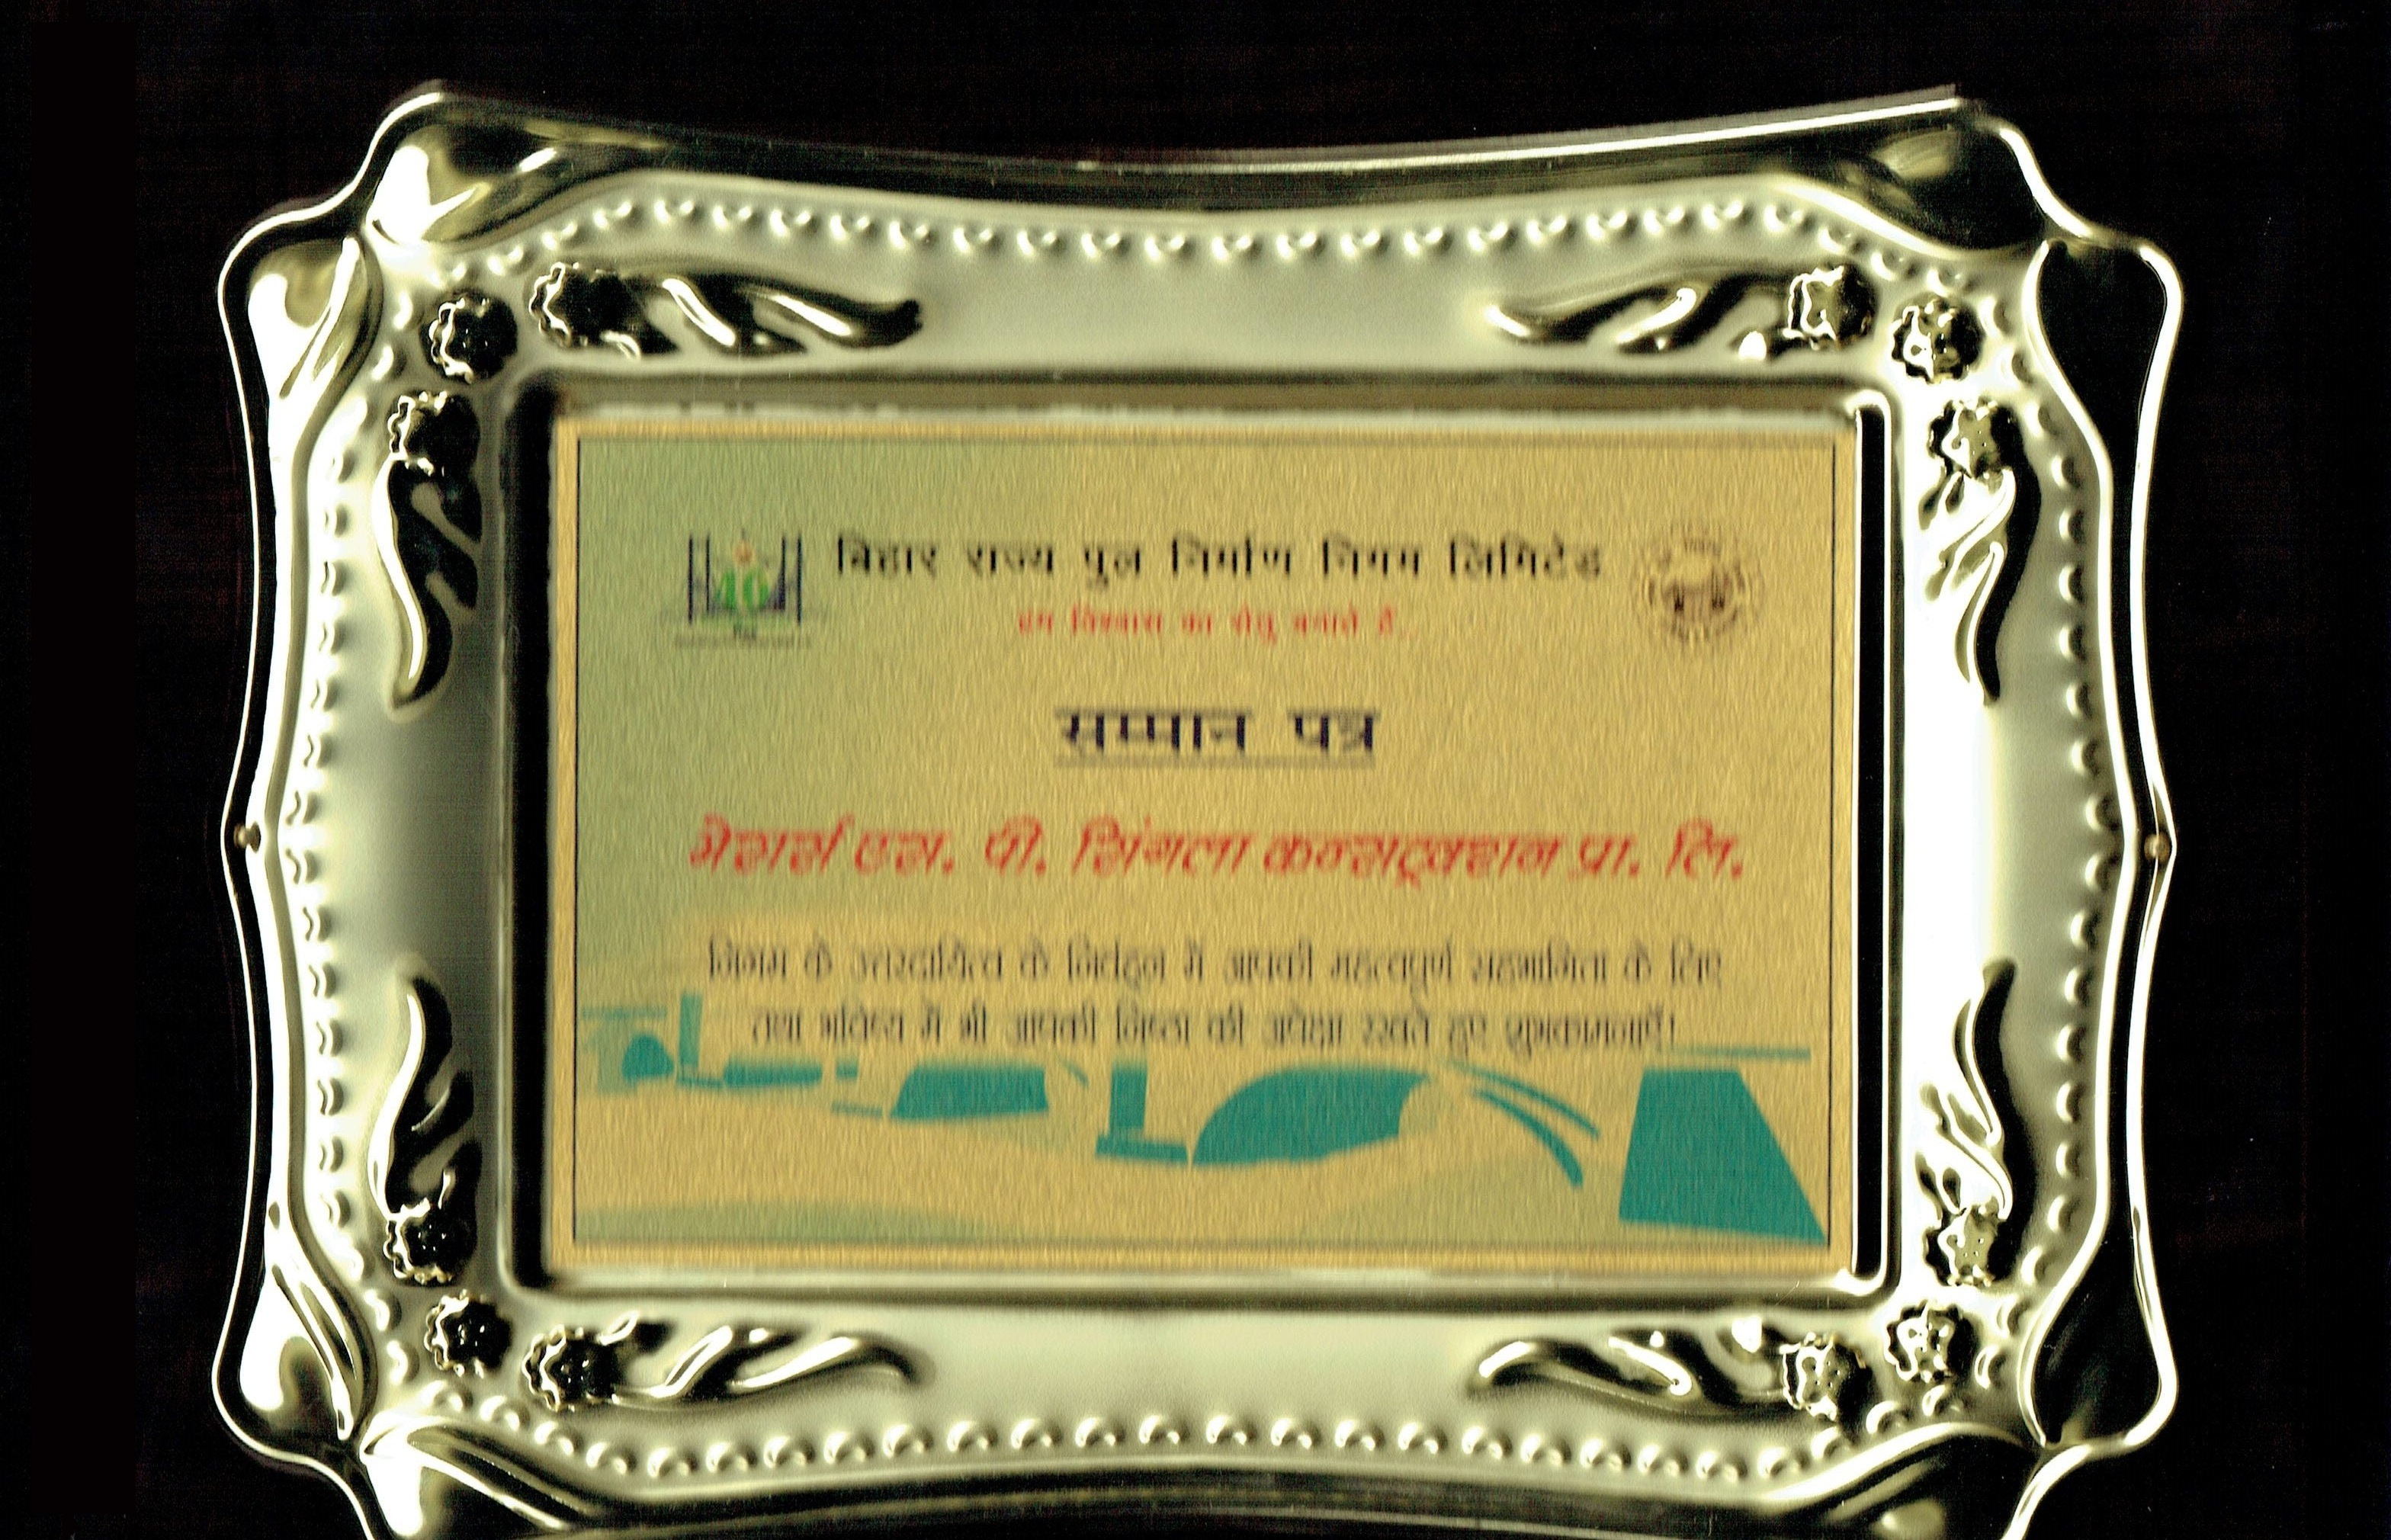 Citation given by Bihar Rajya Pul Nirman Nigam Ltd, Bihar